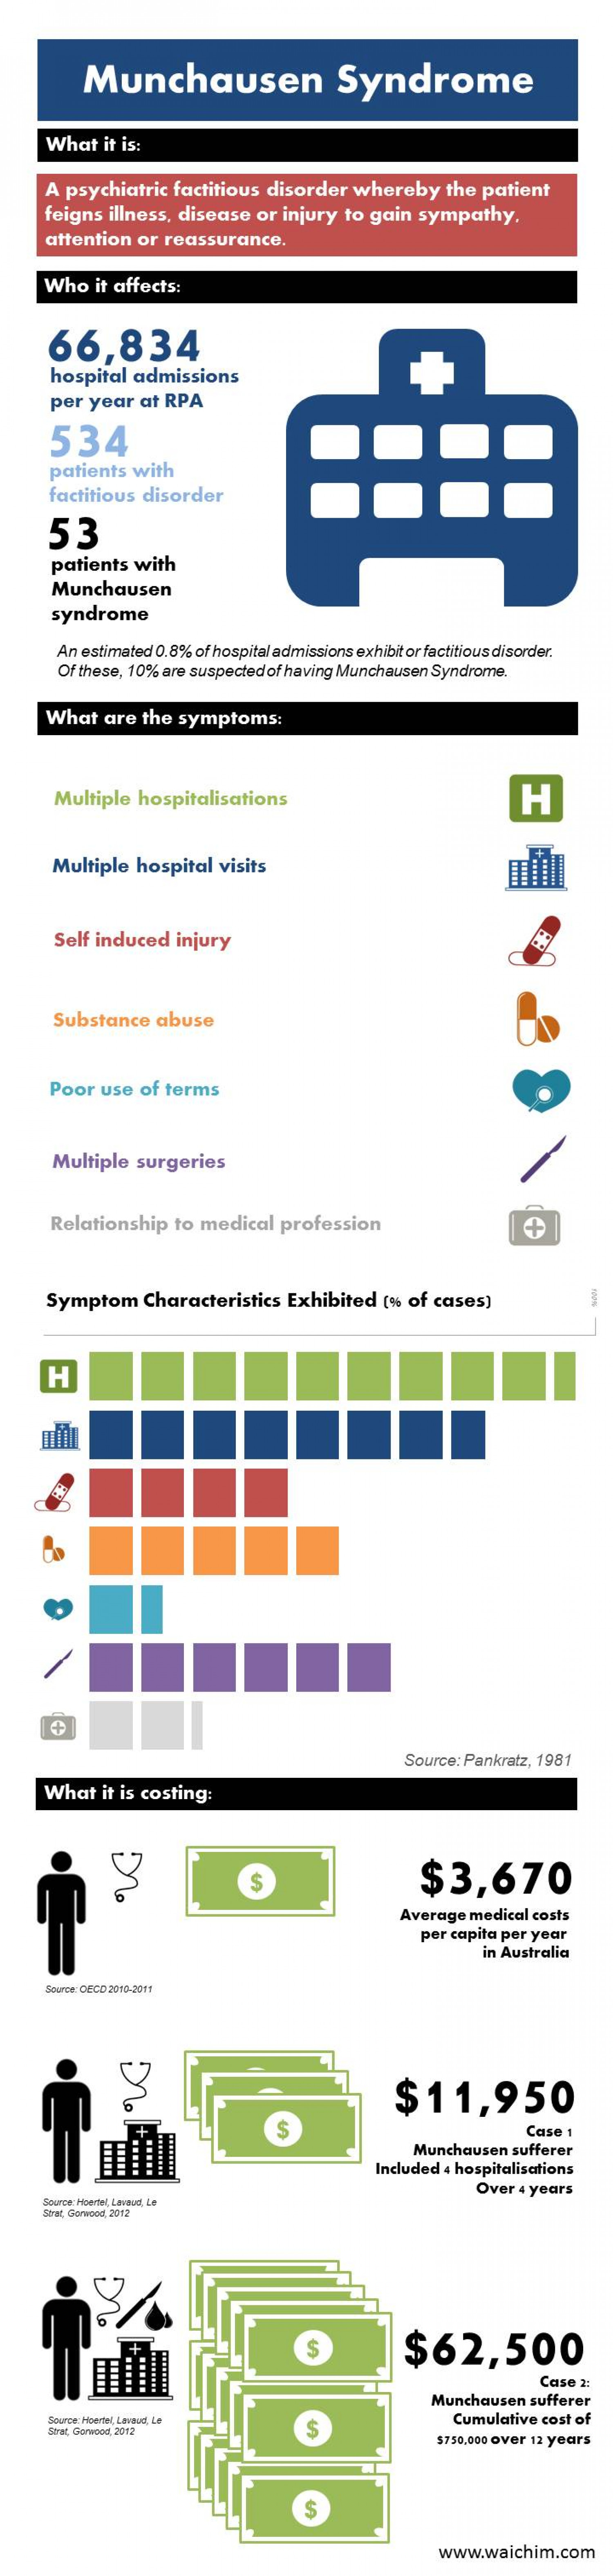 Munchausen Syndrome Infographic